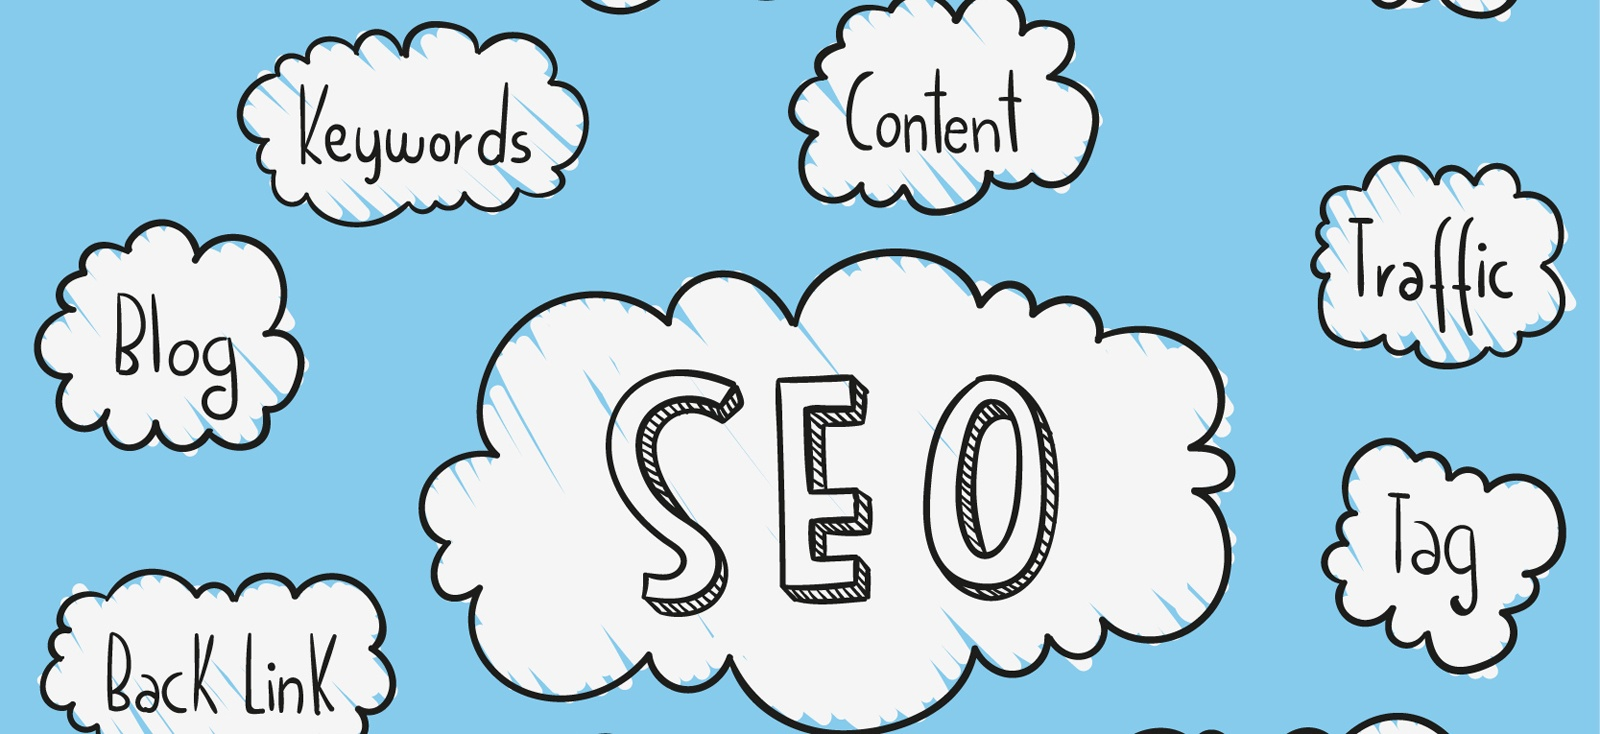 seo semantic cloud